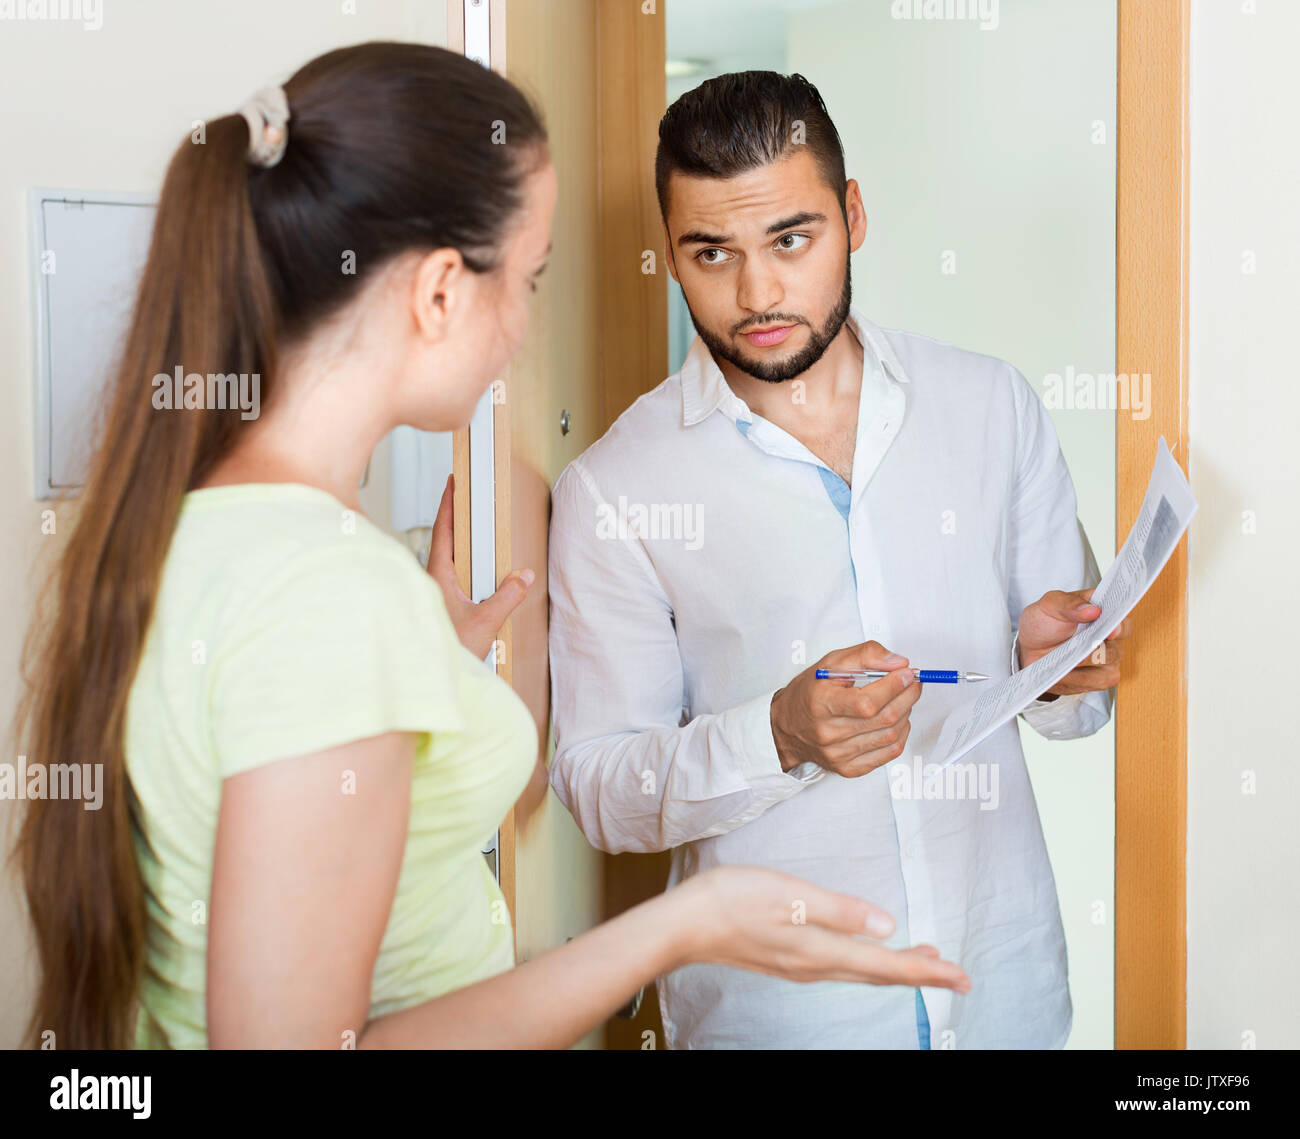 Businessman trying to collect money from housewife at  door Stock Photo